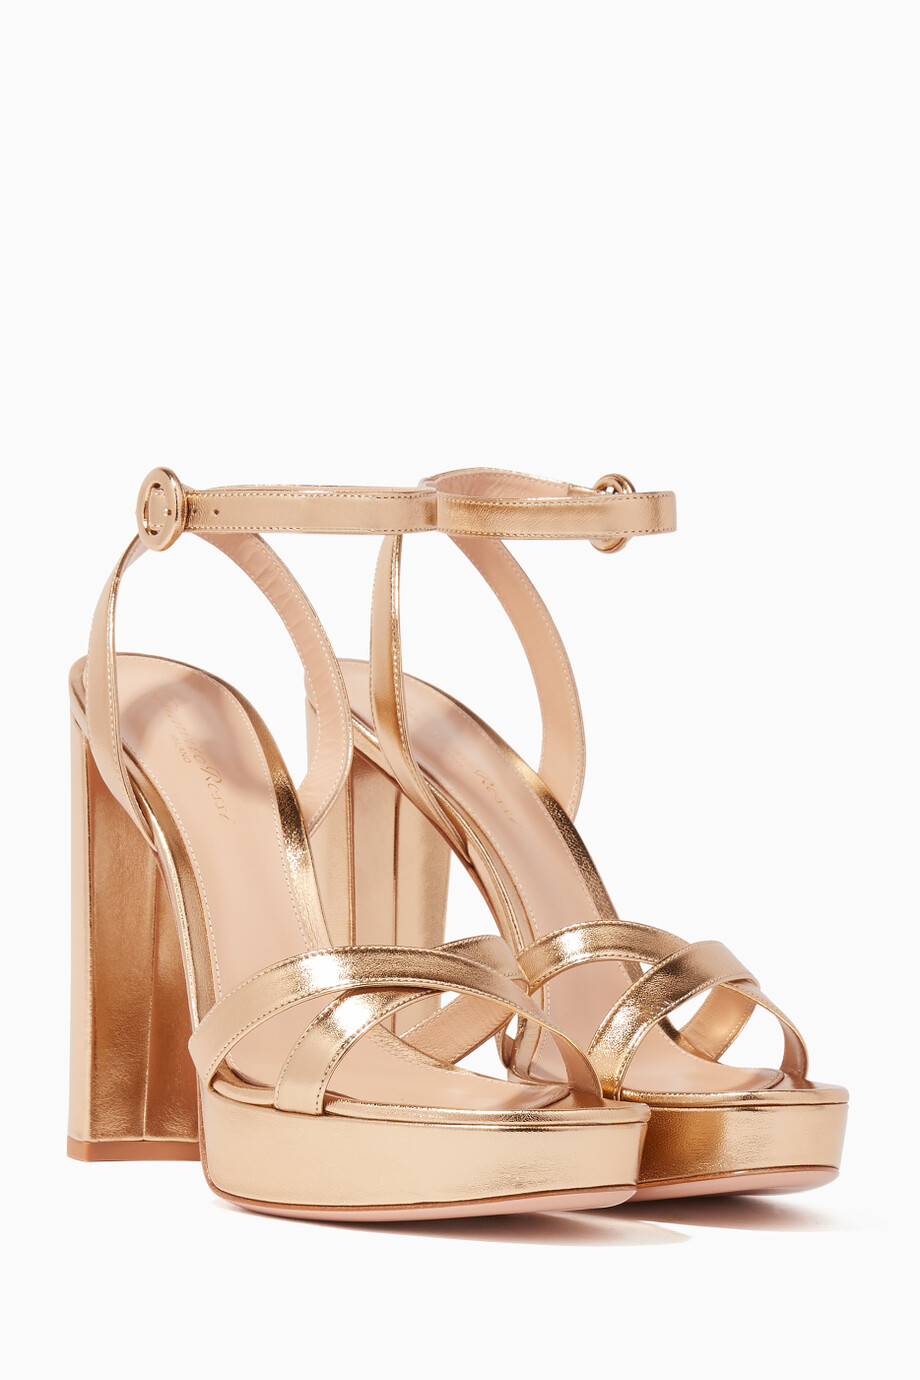 363b2f7963 Shop Gianvito Rossi Gold Gold Nappa Poppy Platform Sandals for Women ...